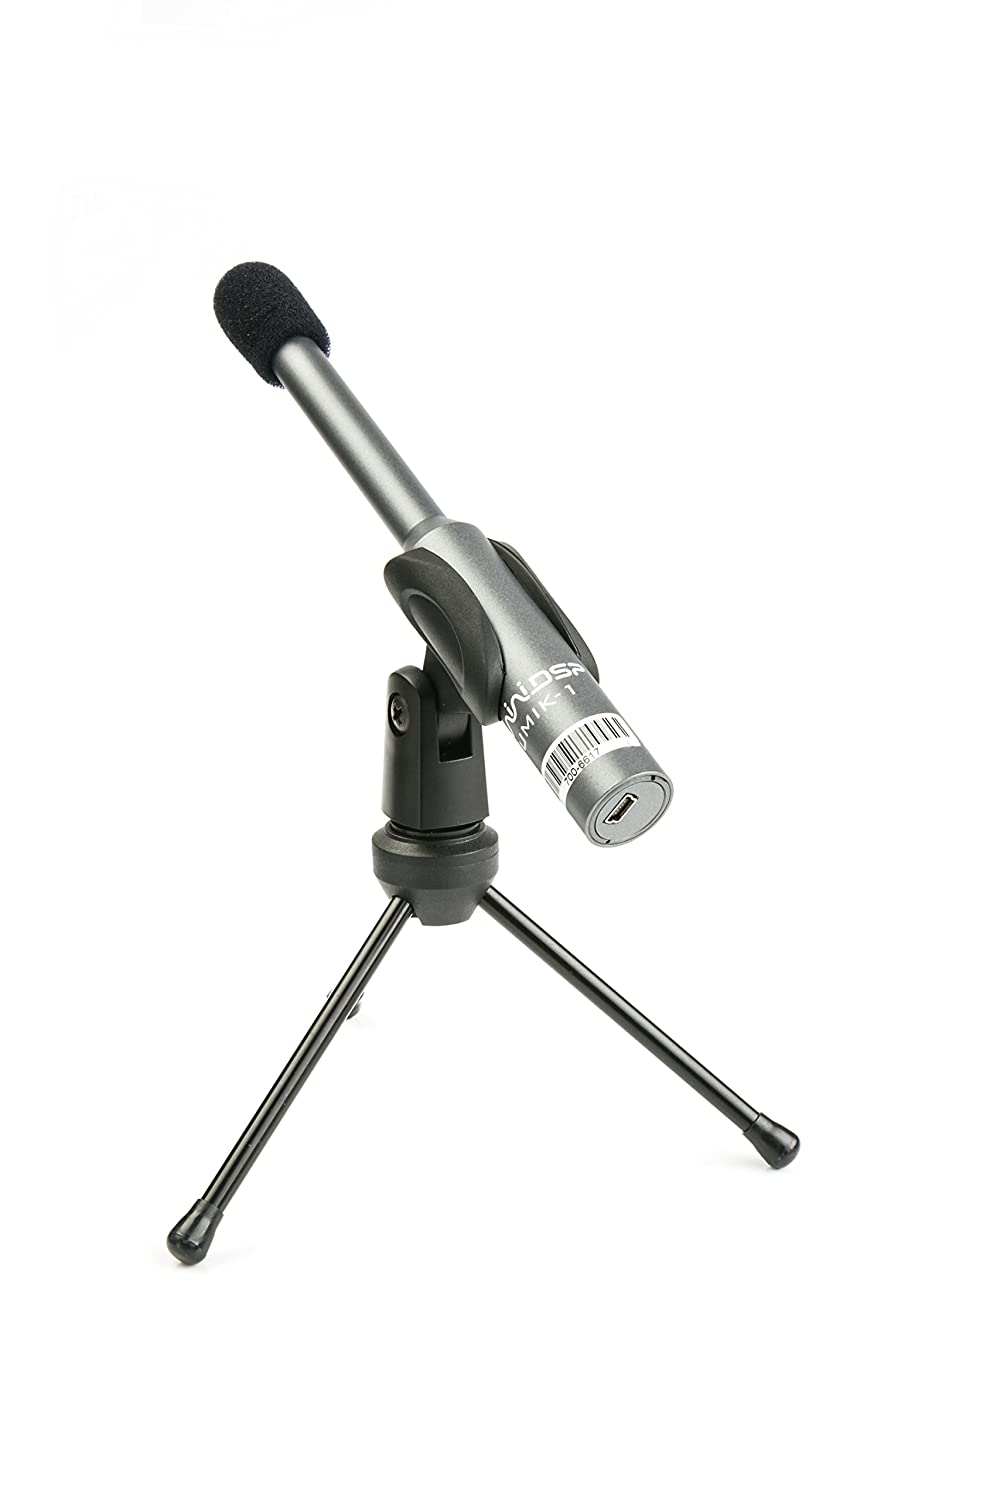 miniDSP UMIK-1 USB Measurement Calibrated Microphone NATAL-MR-PN-8748133